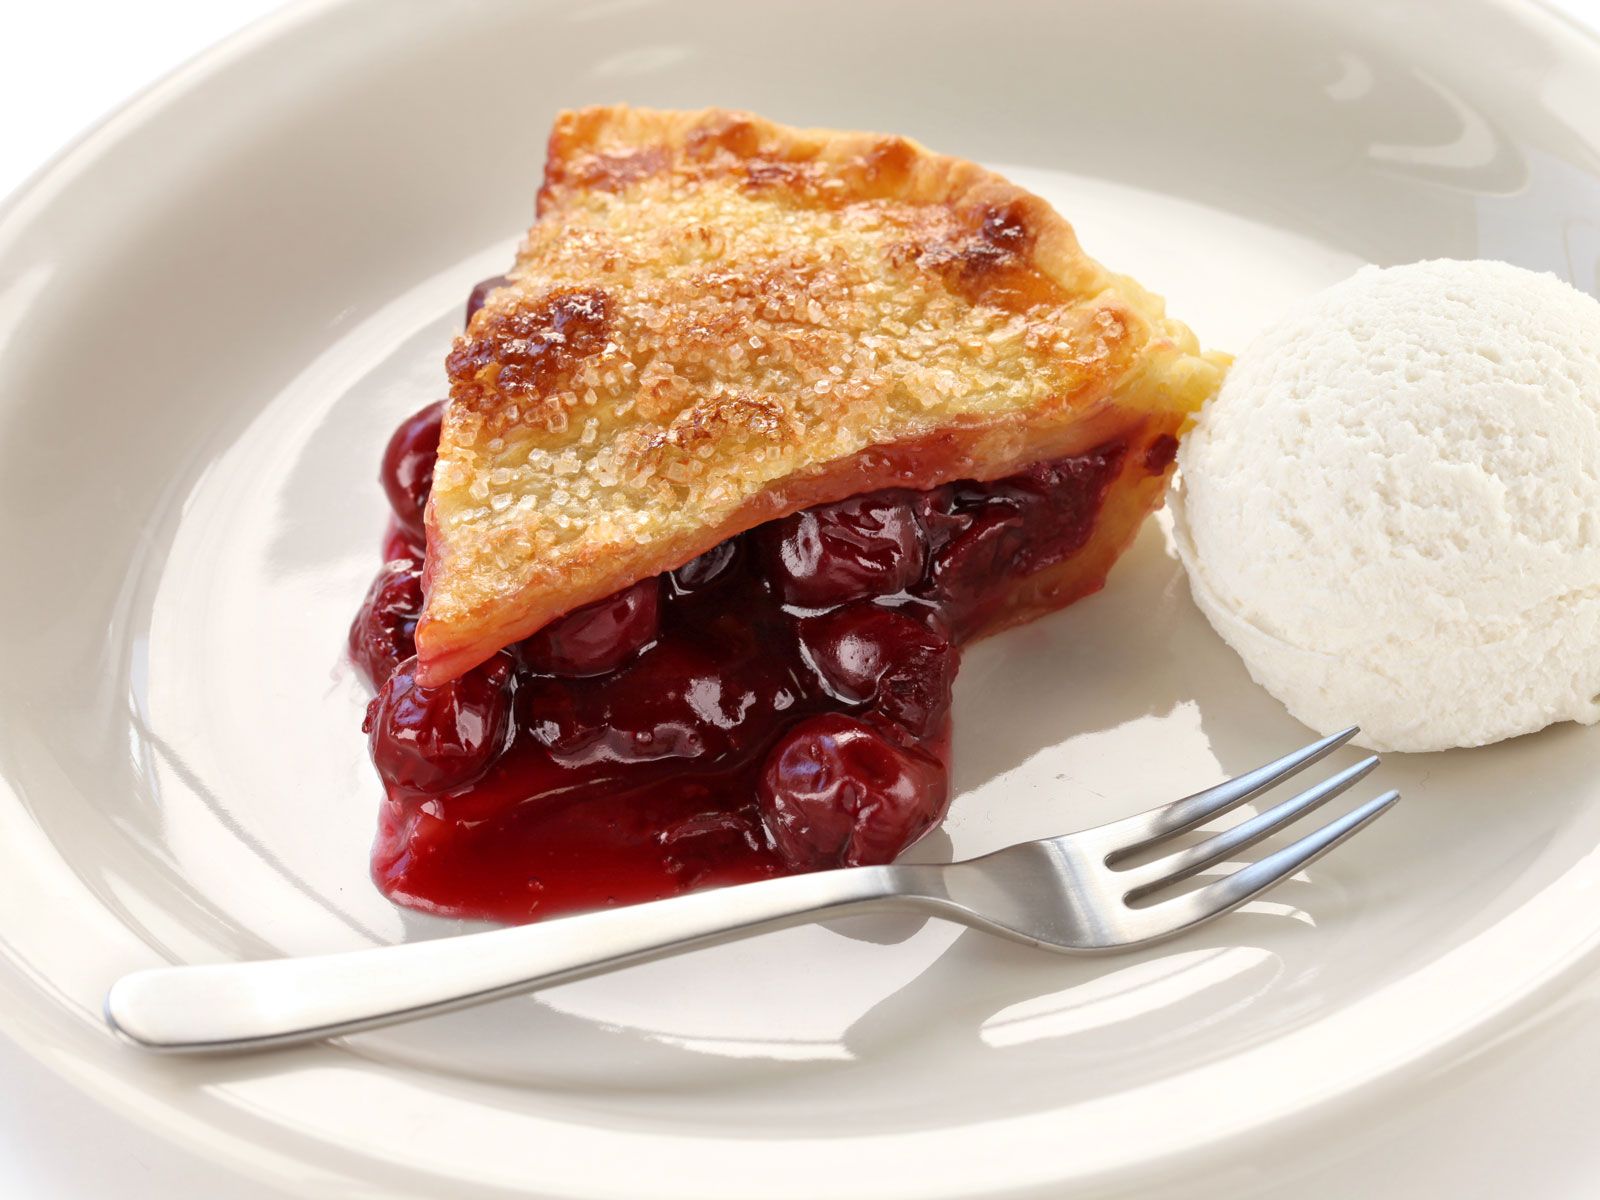 FDA Reconsiders Regulations on Frozen Cherry Pies